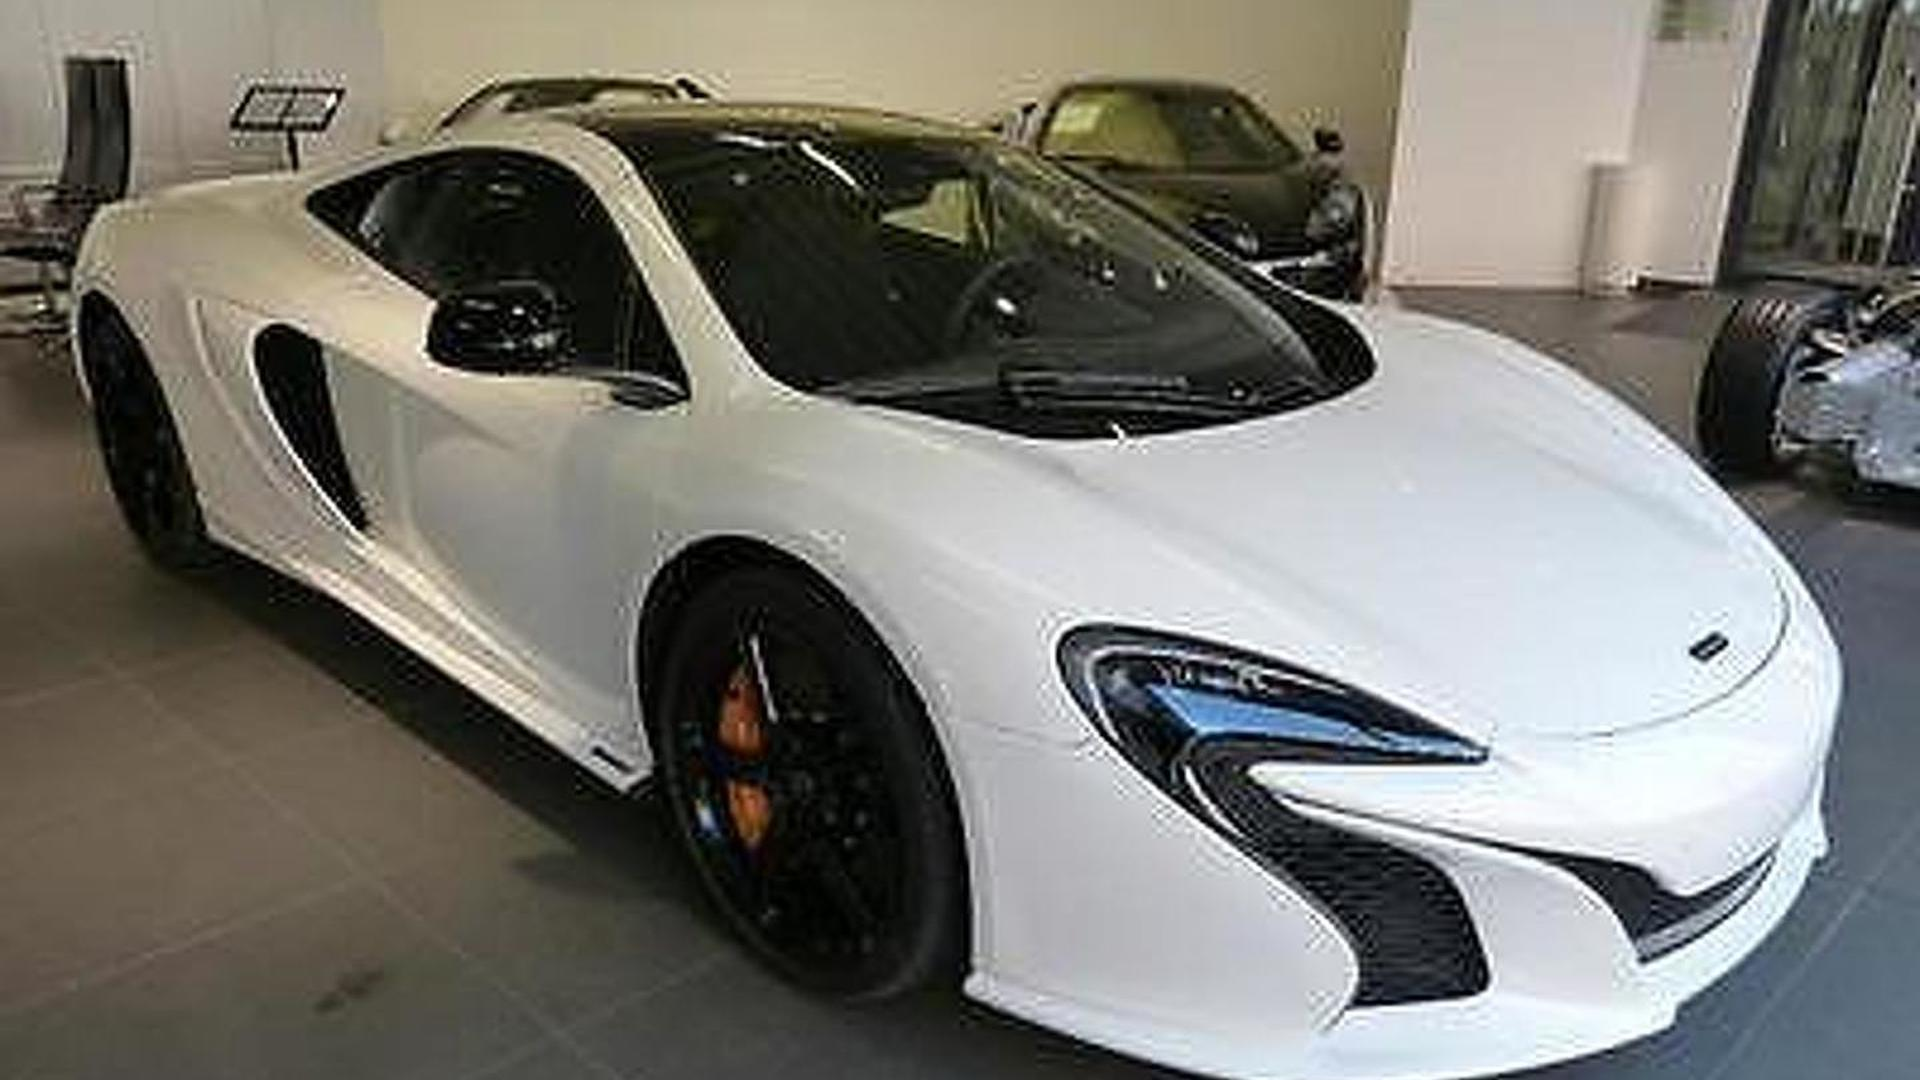 https://icdn-1.motor1.com/images/mgl/6z1vr/s1/2014-532489-mclaren-650s-coupe-by-mclaren-special-operations1.jpg